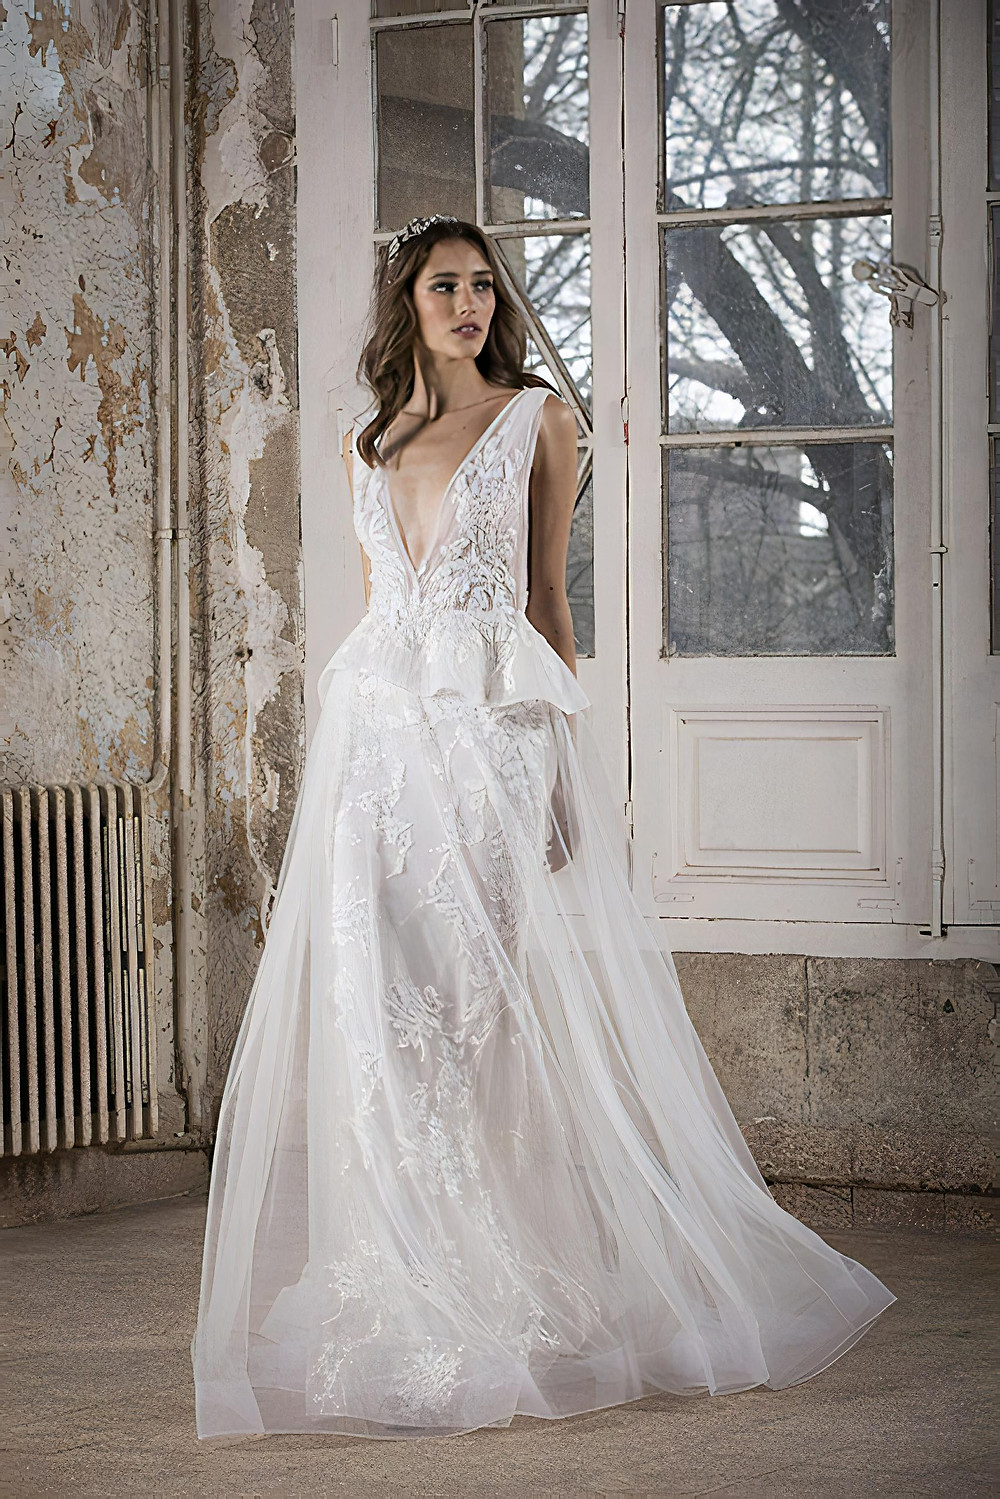 A mermaid cut lace wedding dress featuring a deep-V neckline, with organza peplums and a sheer tulle overlay